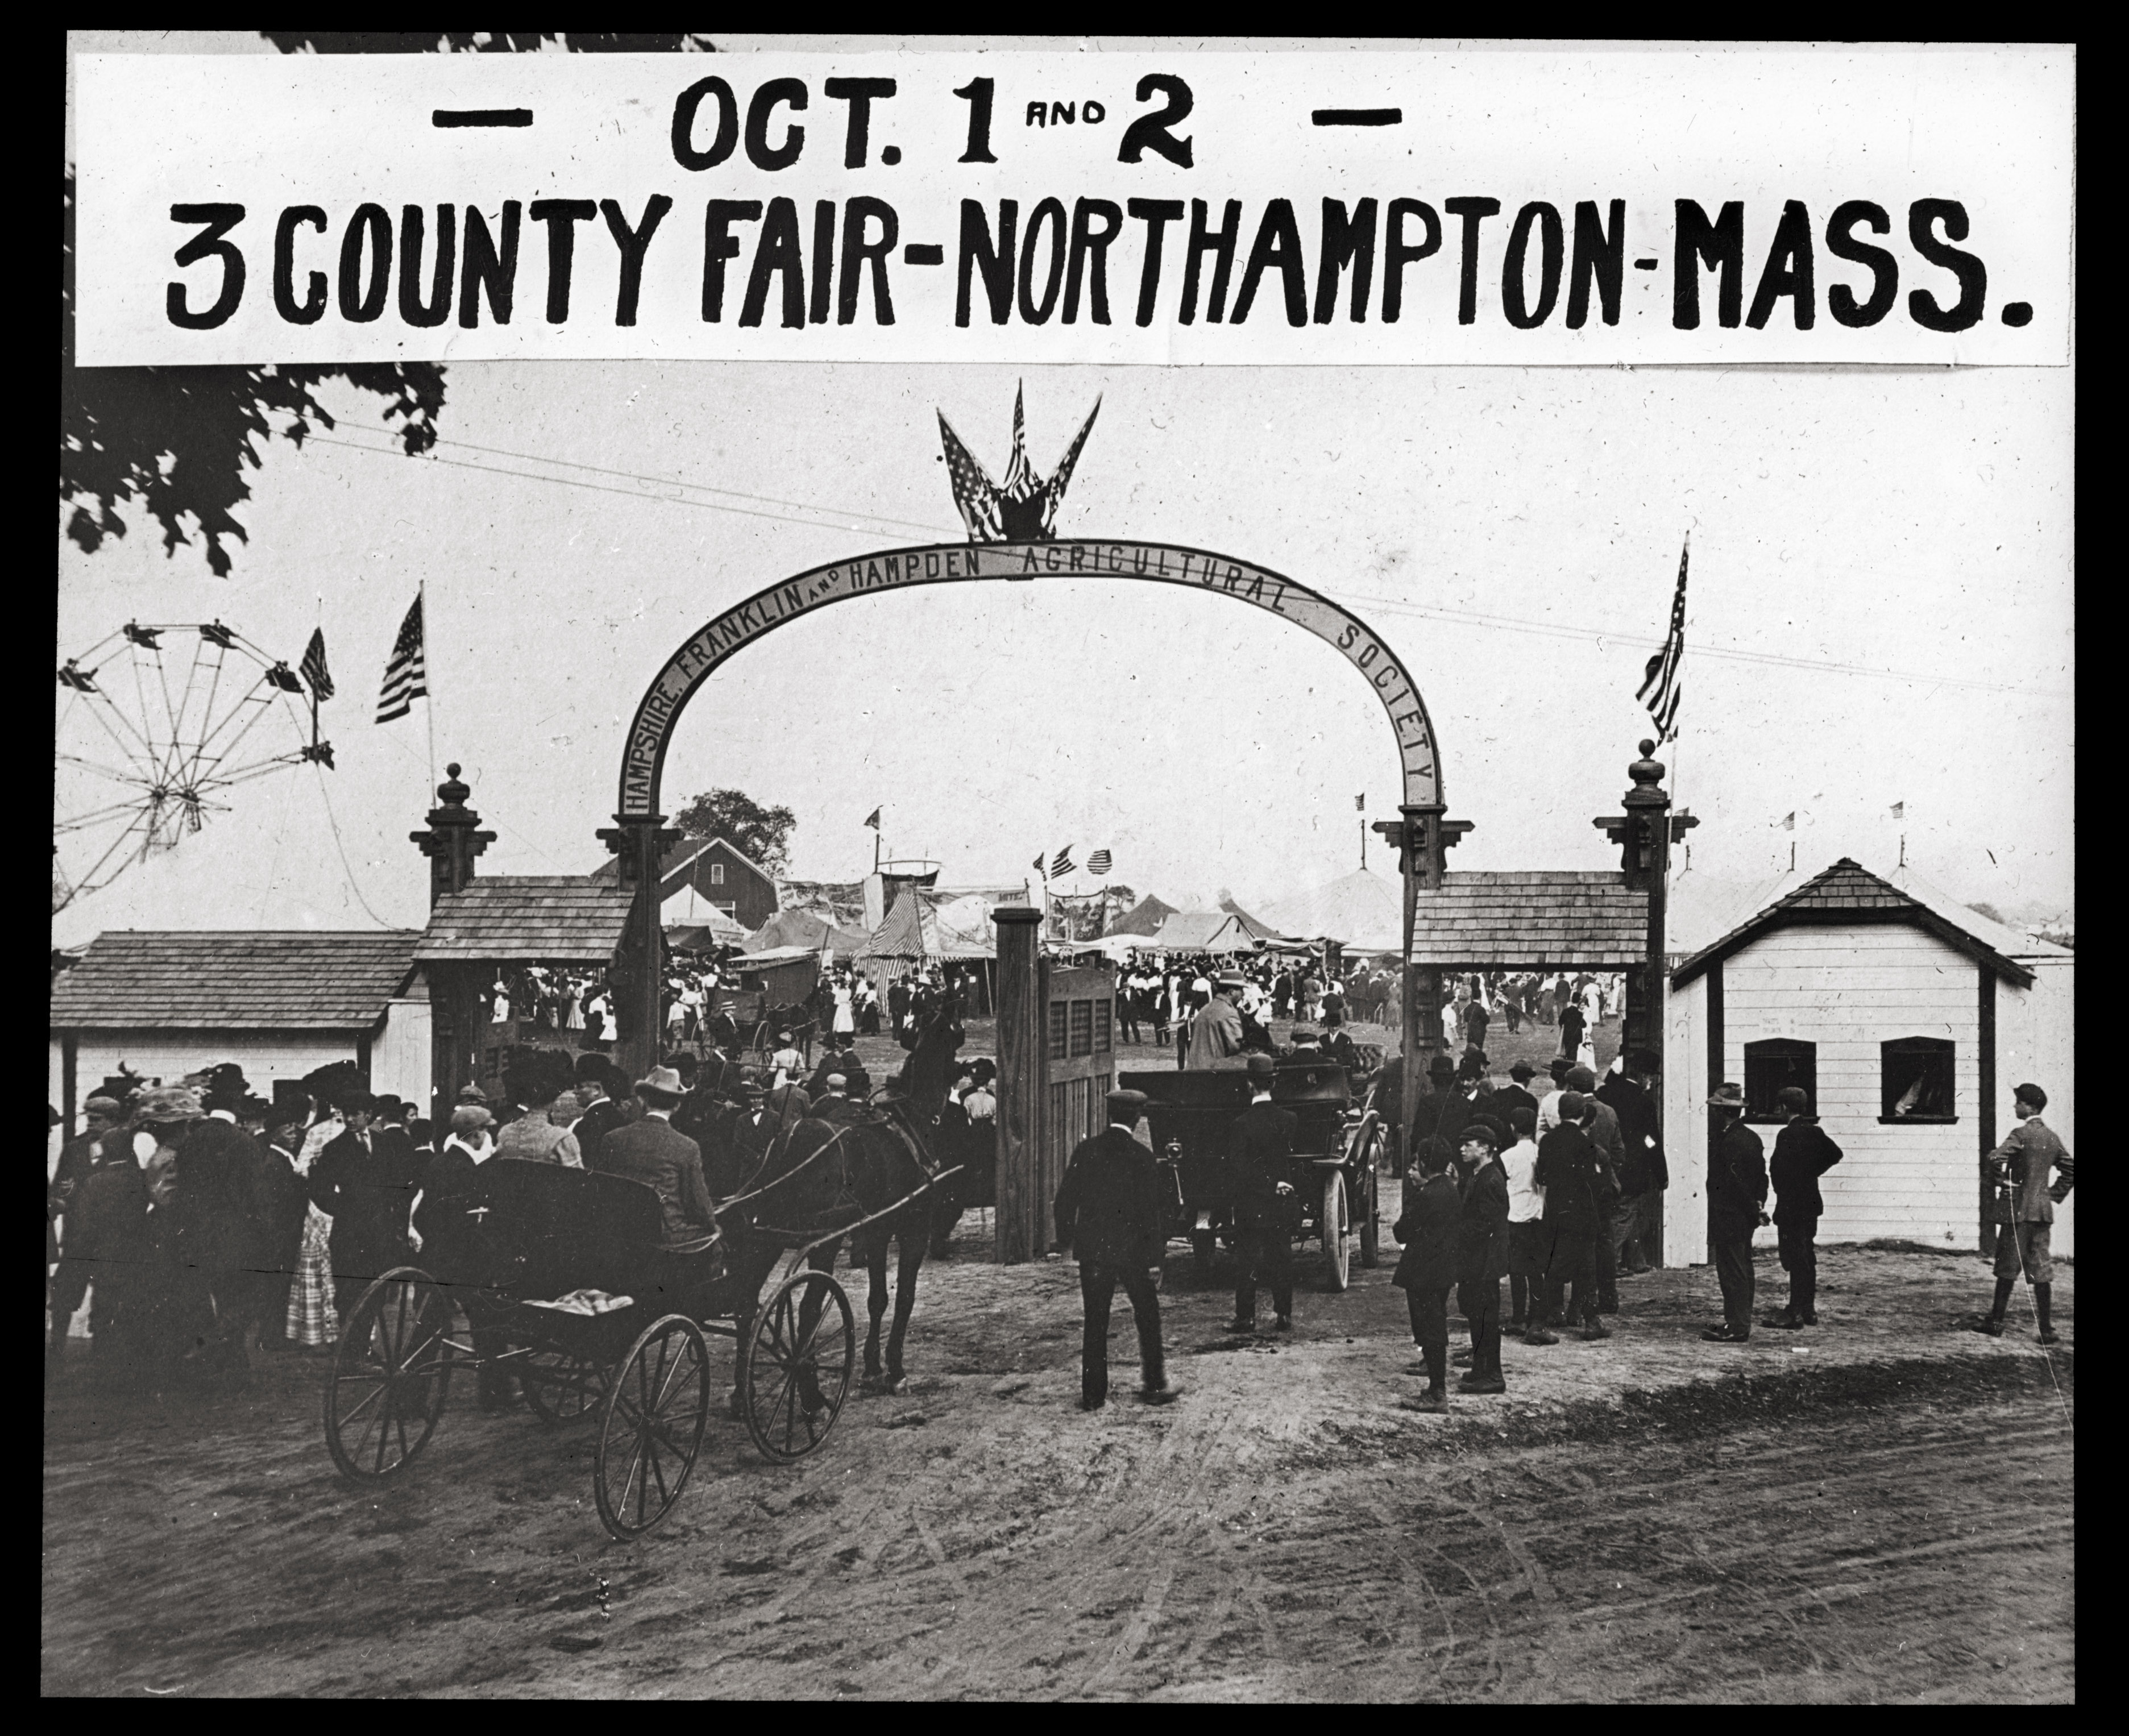 Three County Fair, ca. 1920